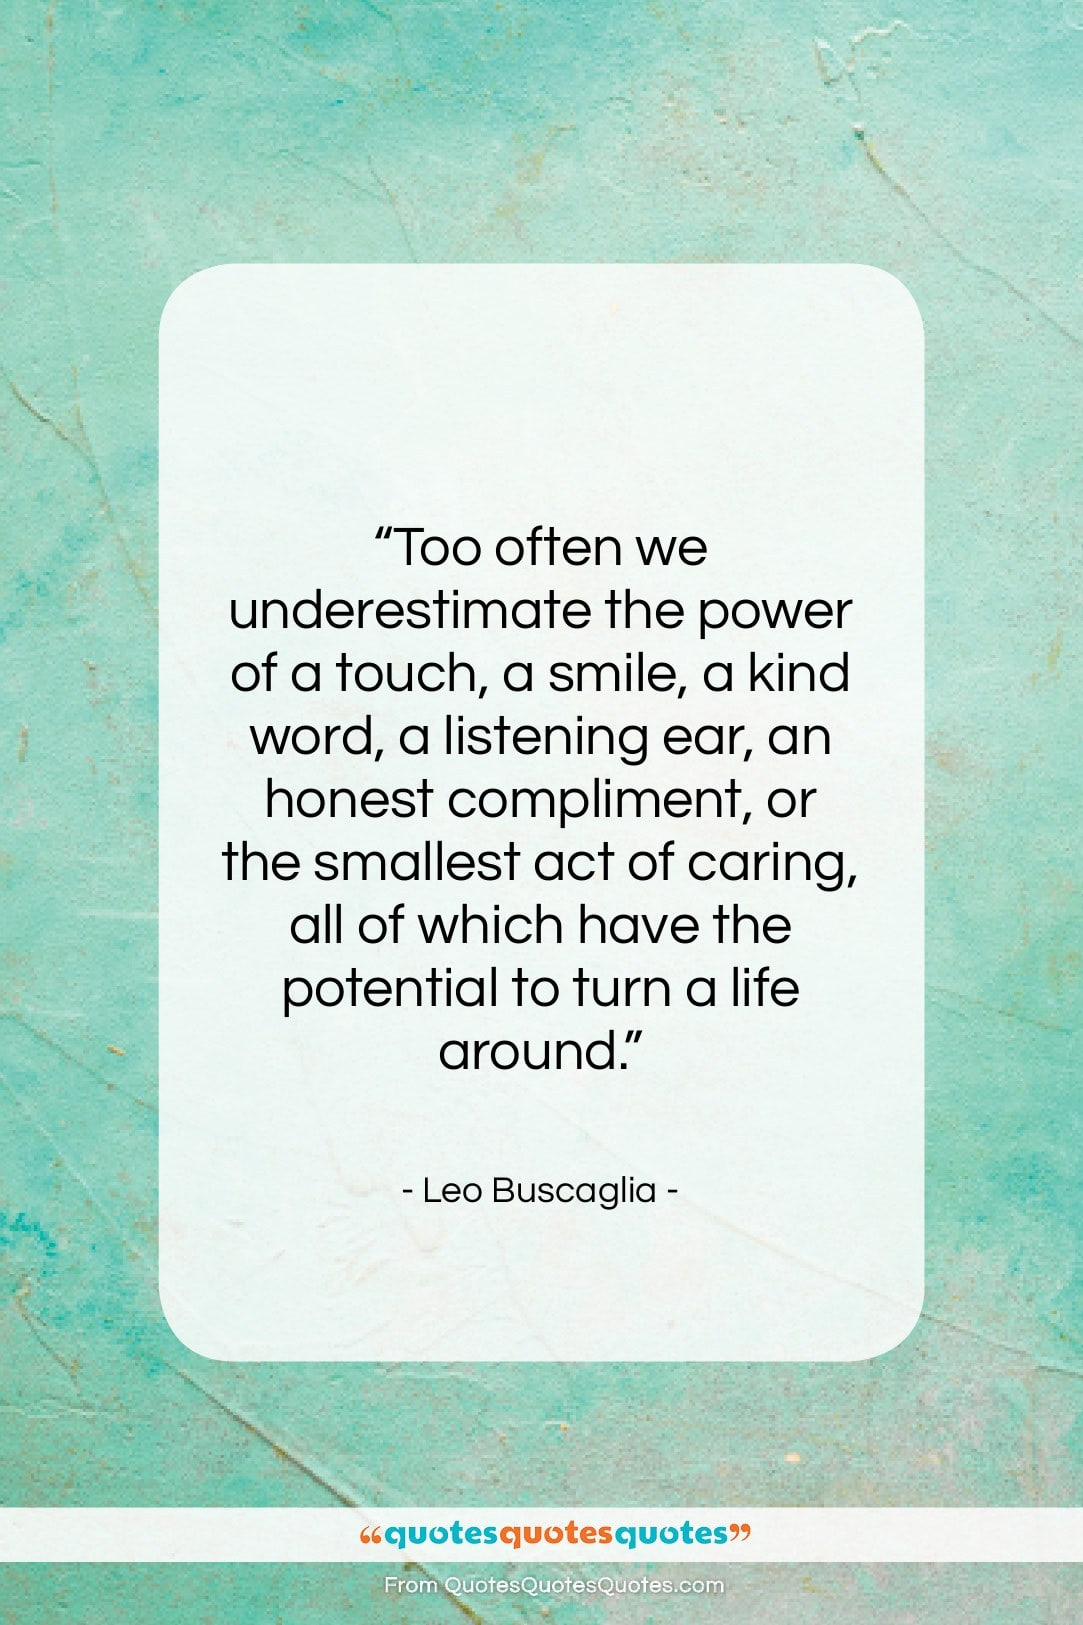 """Leo Buscaglia quote: """"Too often we underestimate the power of…""""- at QuotesQuotesQuotes.com"""